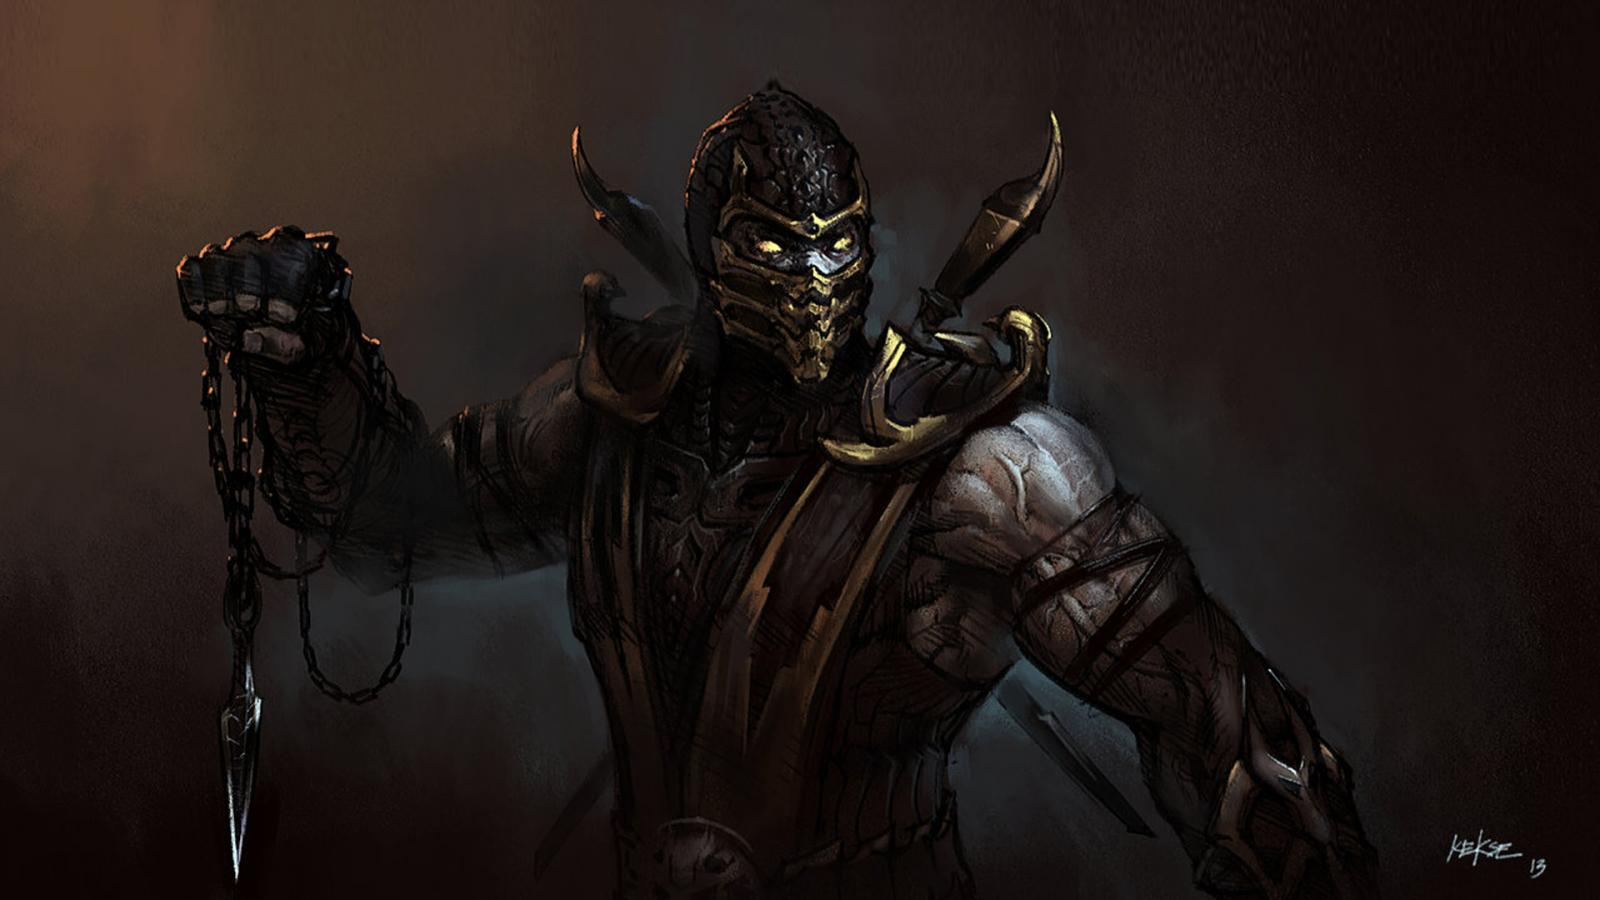 Artistic Images Of Scorpion From Mortal Kombat By